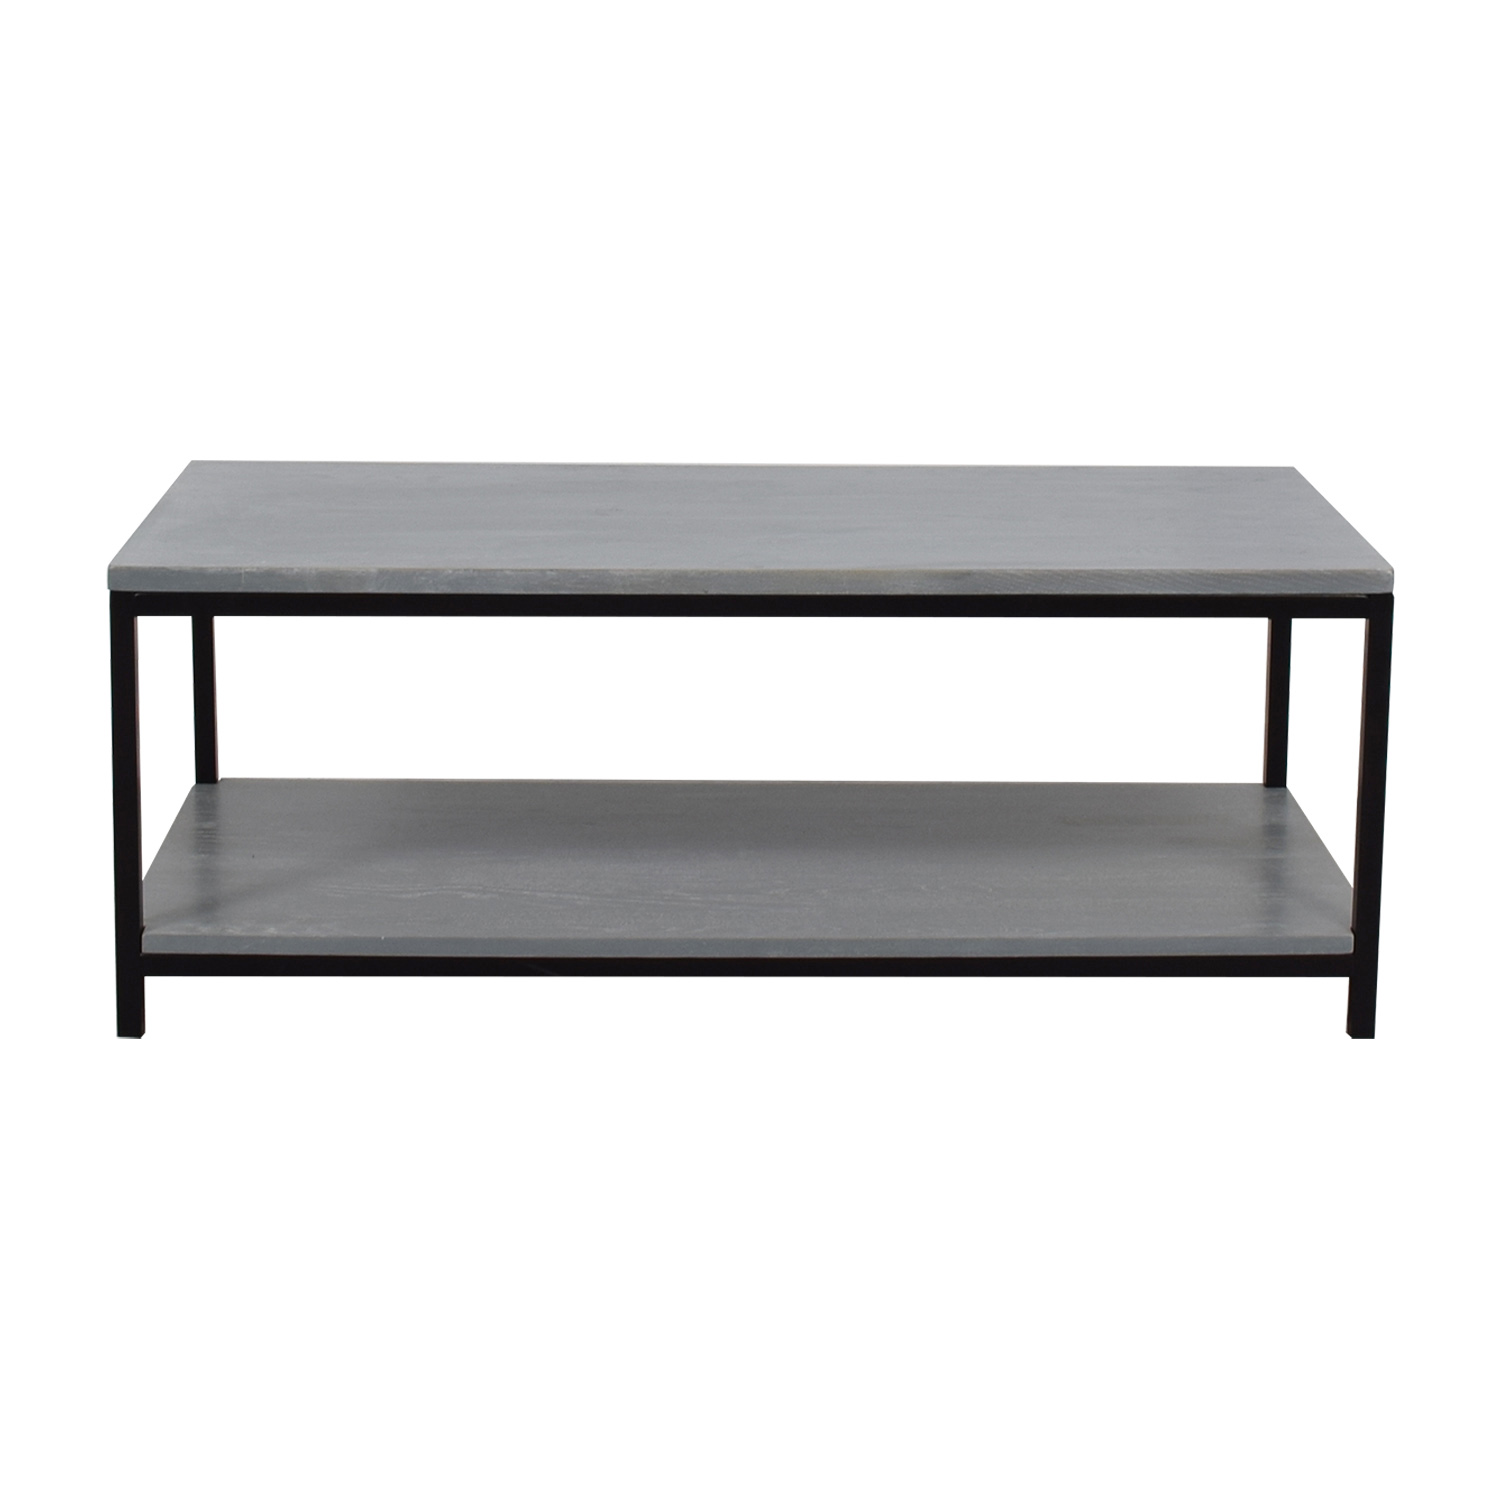 American Trails American Trails Grey Wood and Metal Coffee Table price